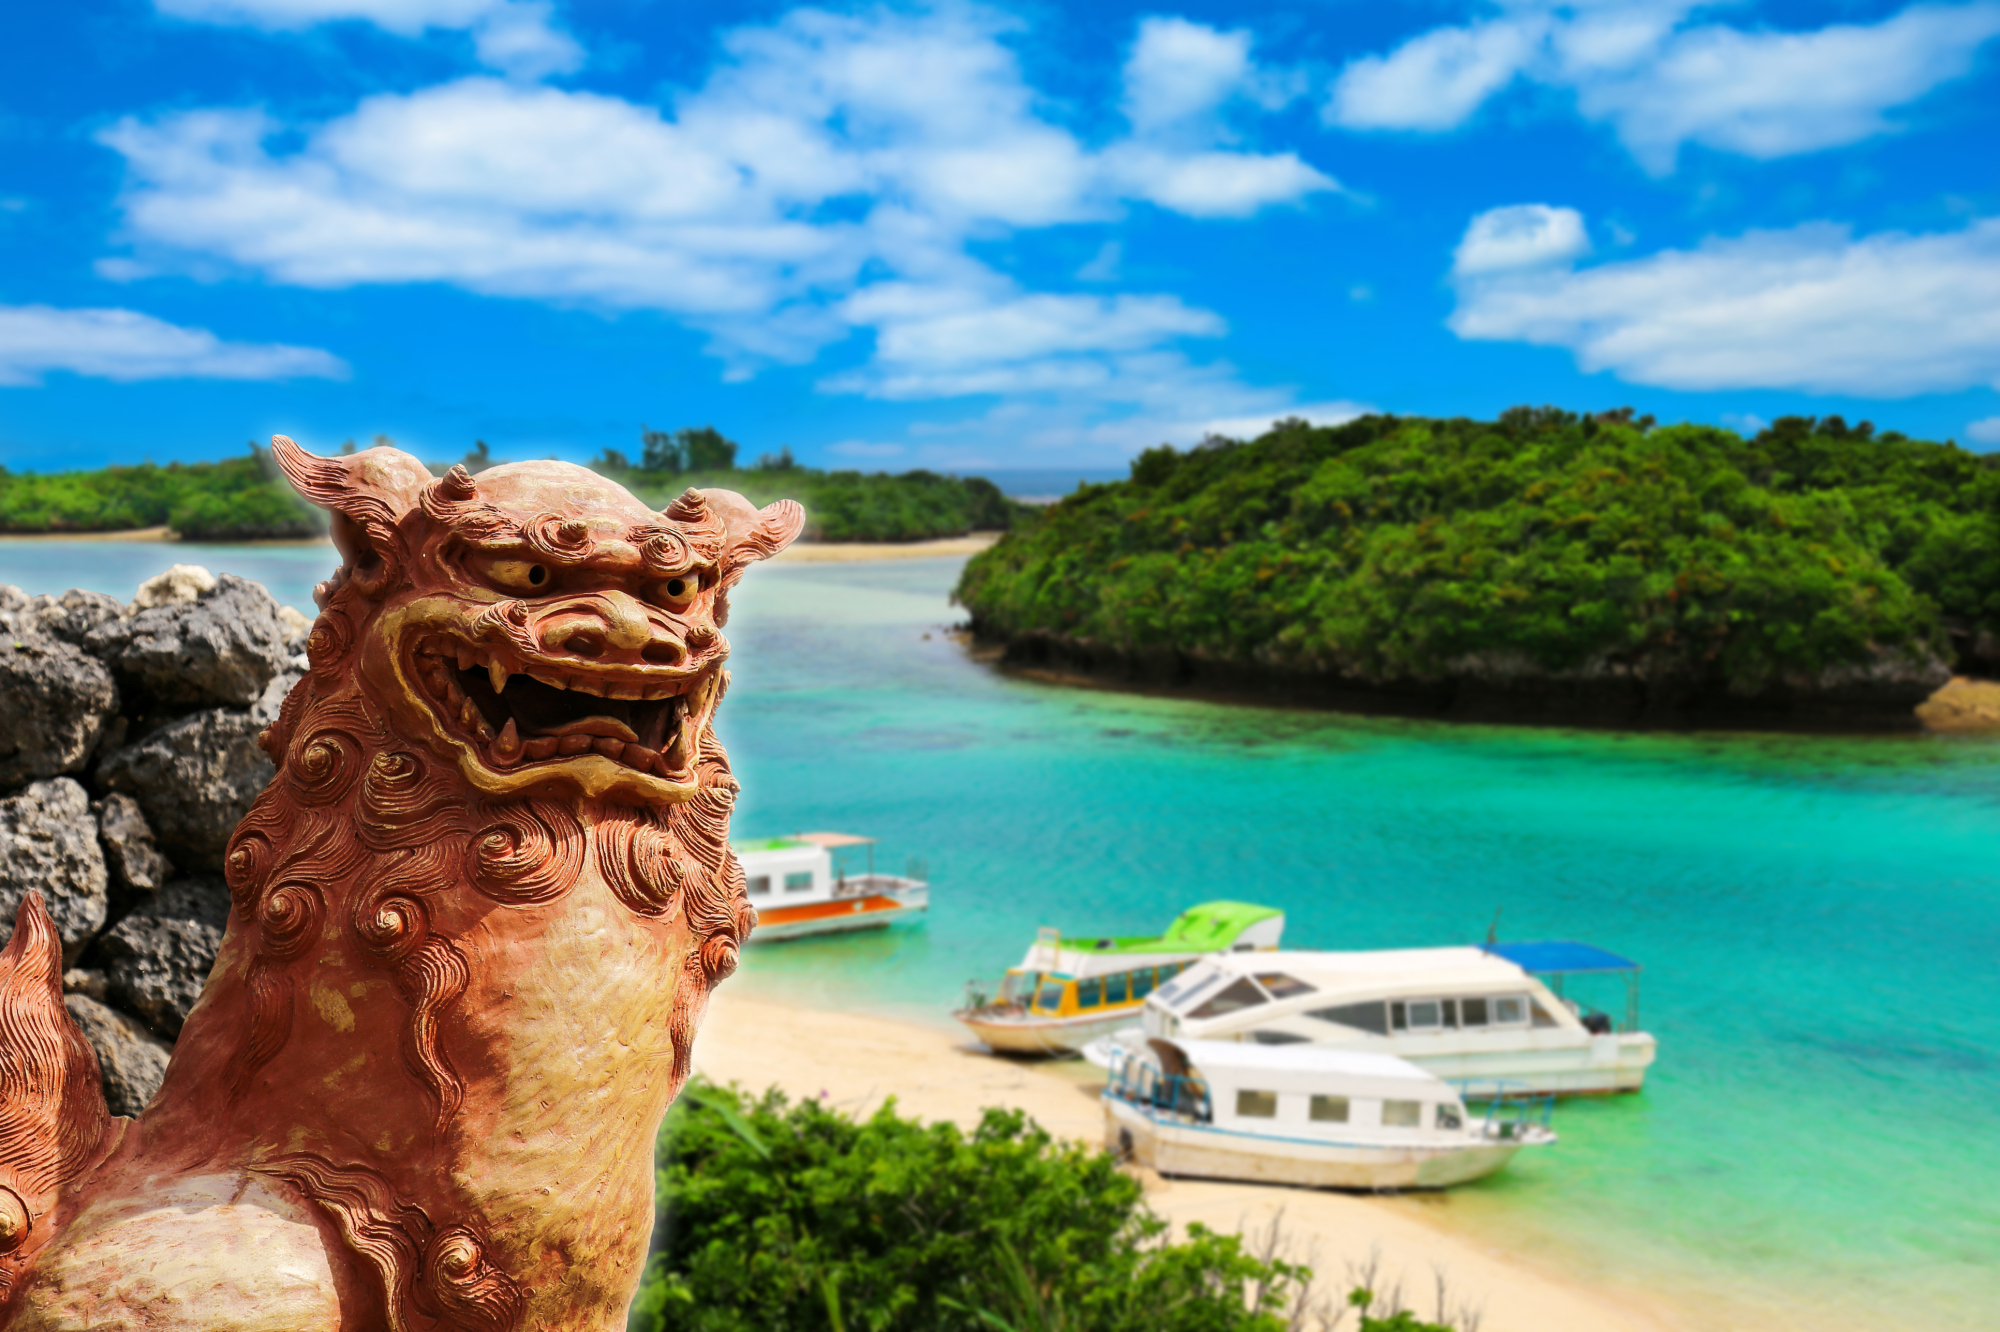 The number of visitors to Okinawa is surging, at a pace that could see the southern tropical islands soon overtake Hawaii as a tourism destination. | ISTOCK